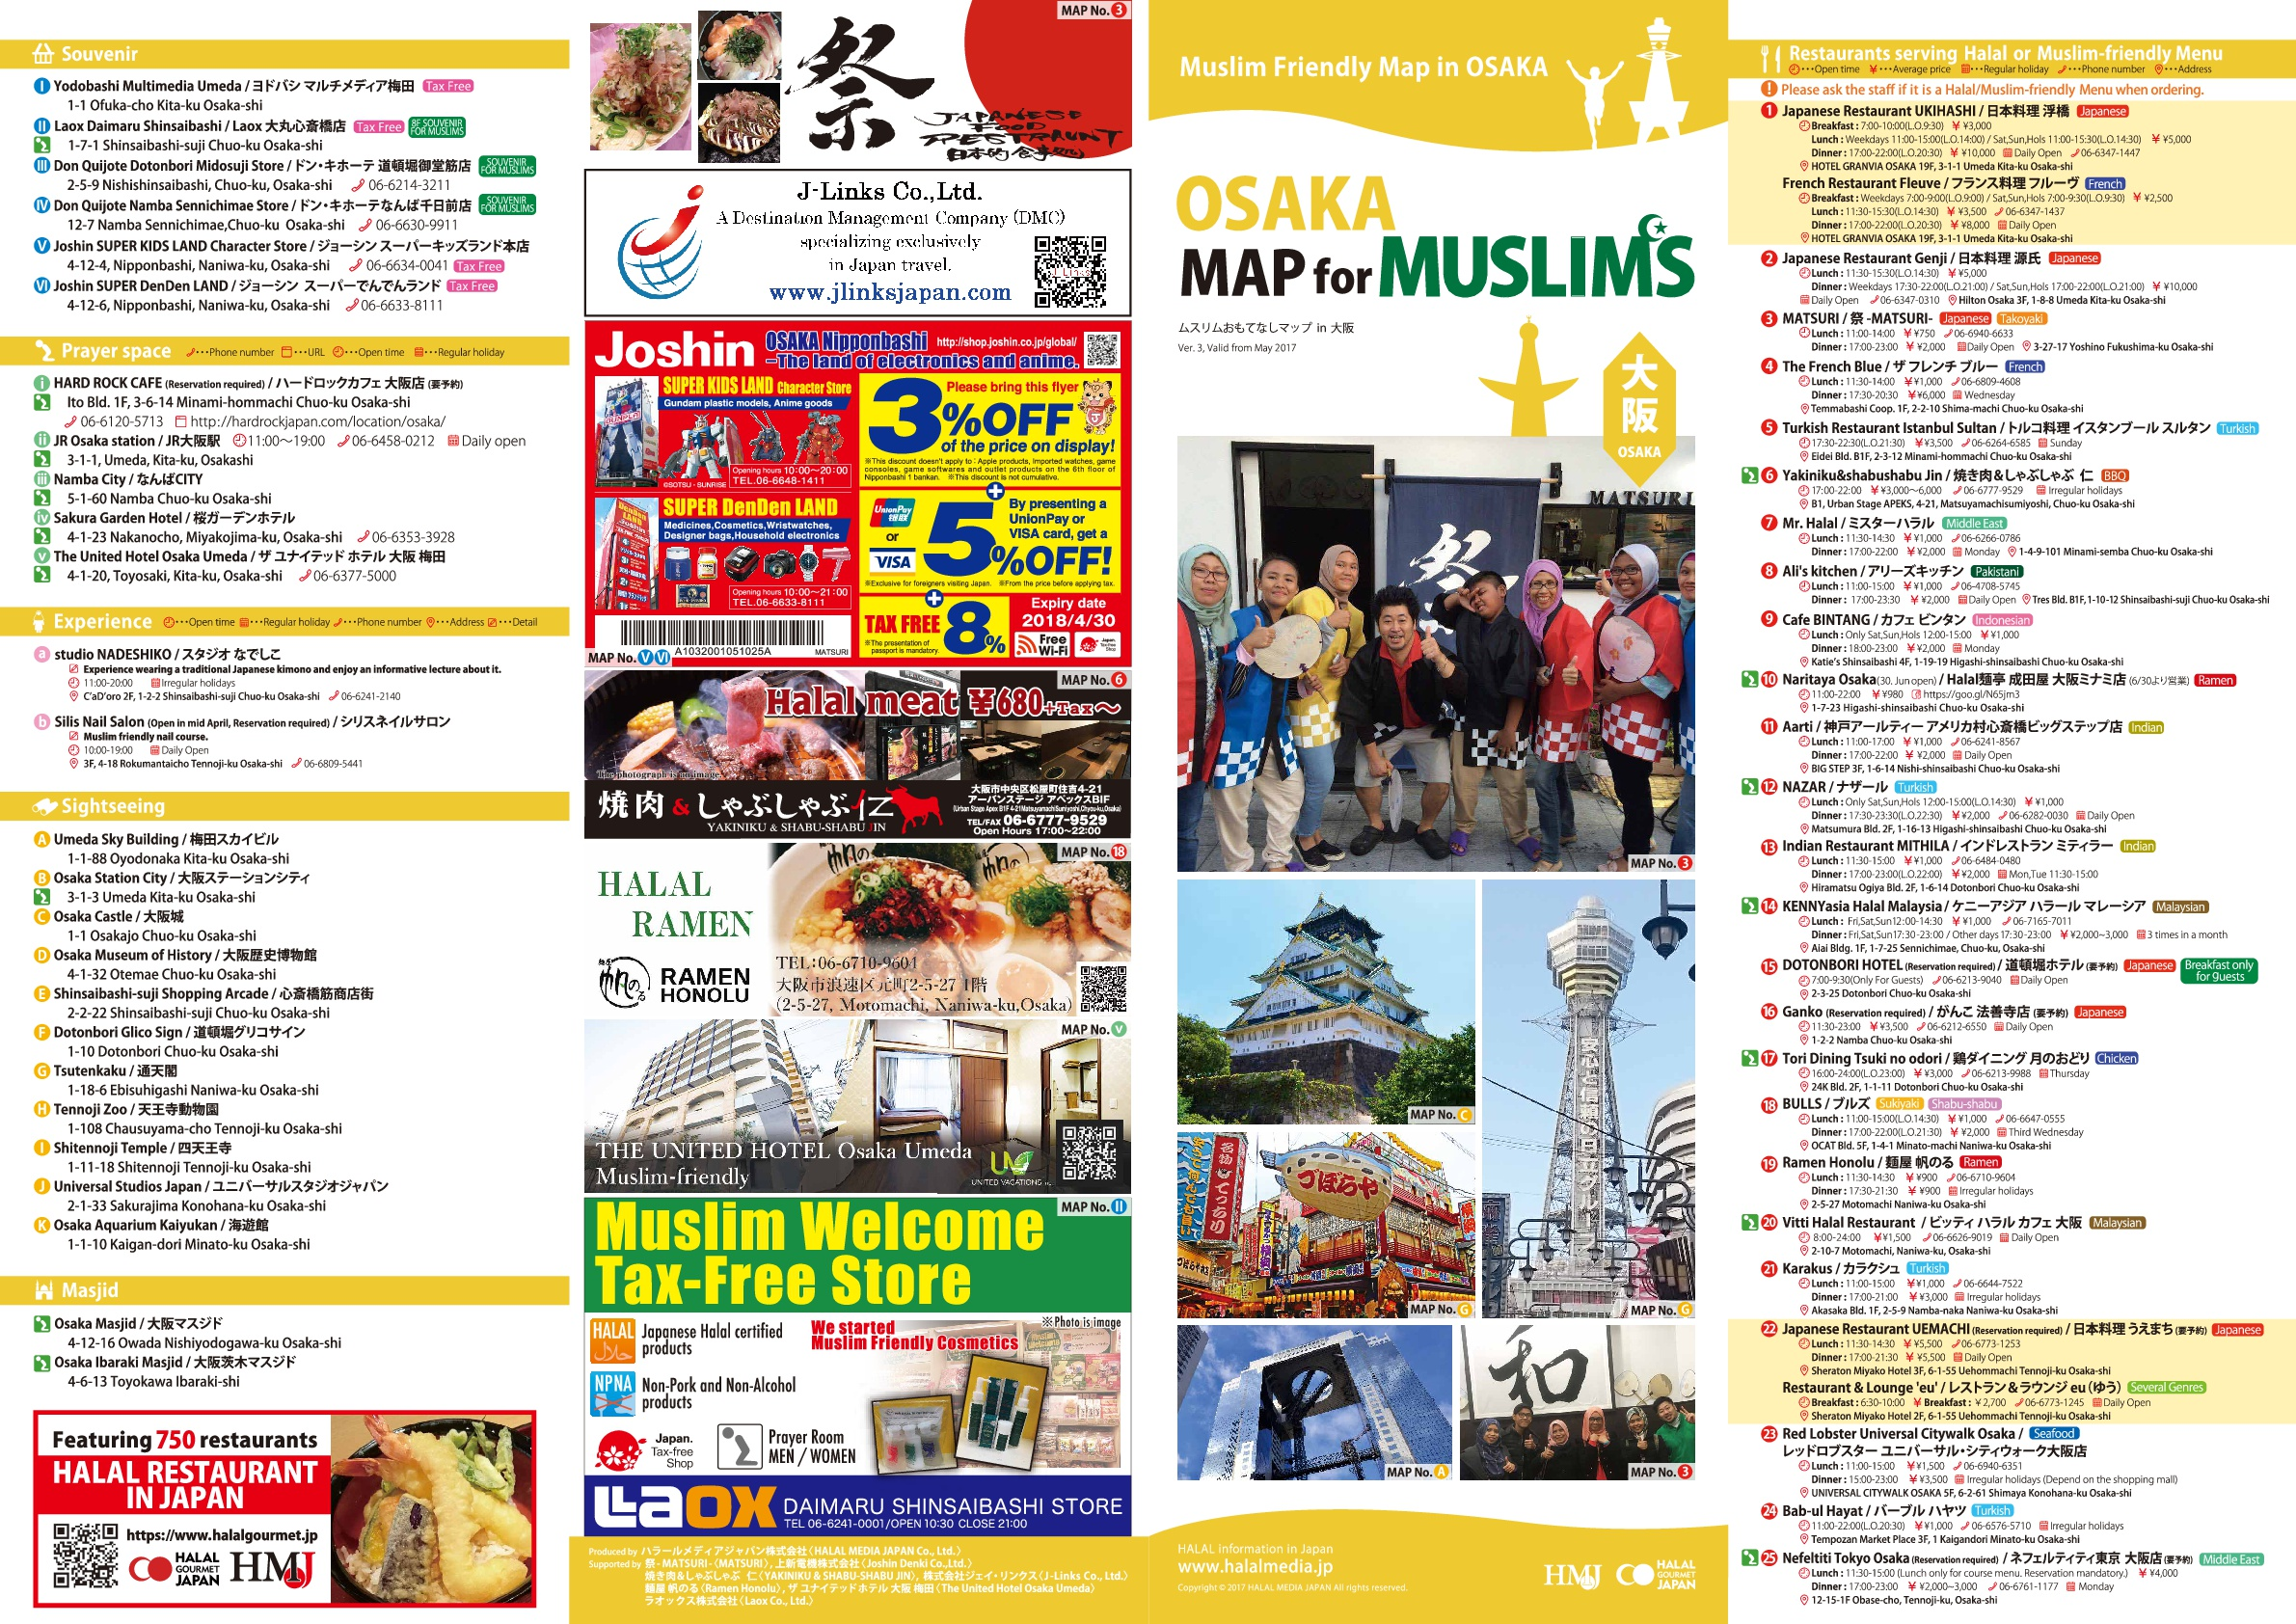 OSAKA MAP FOR MUSLIMS has been finally released Enjoy Osaka Castle